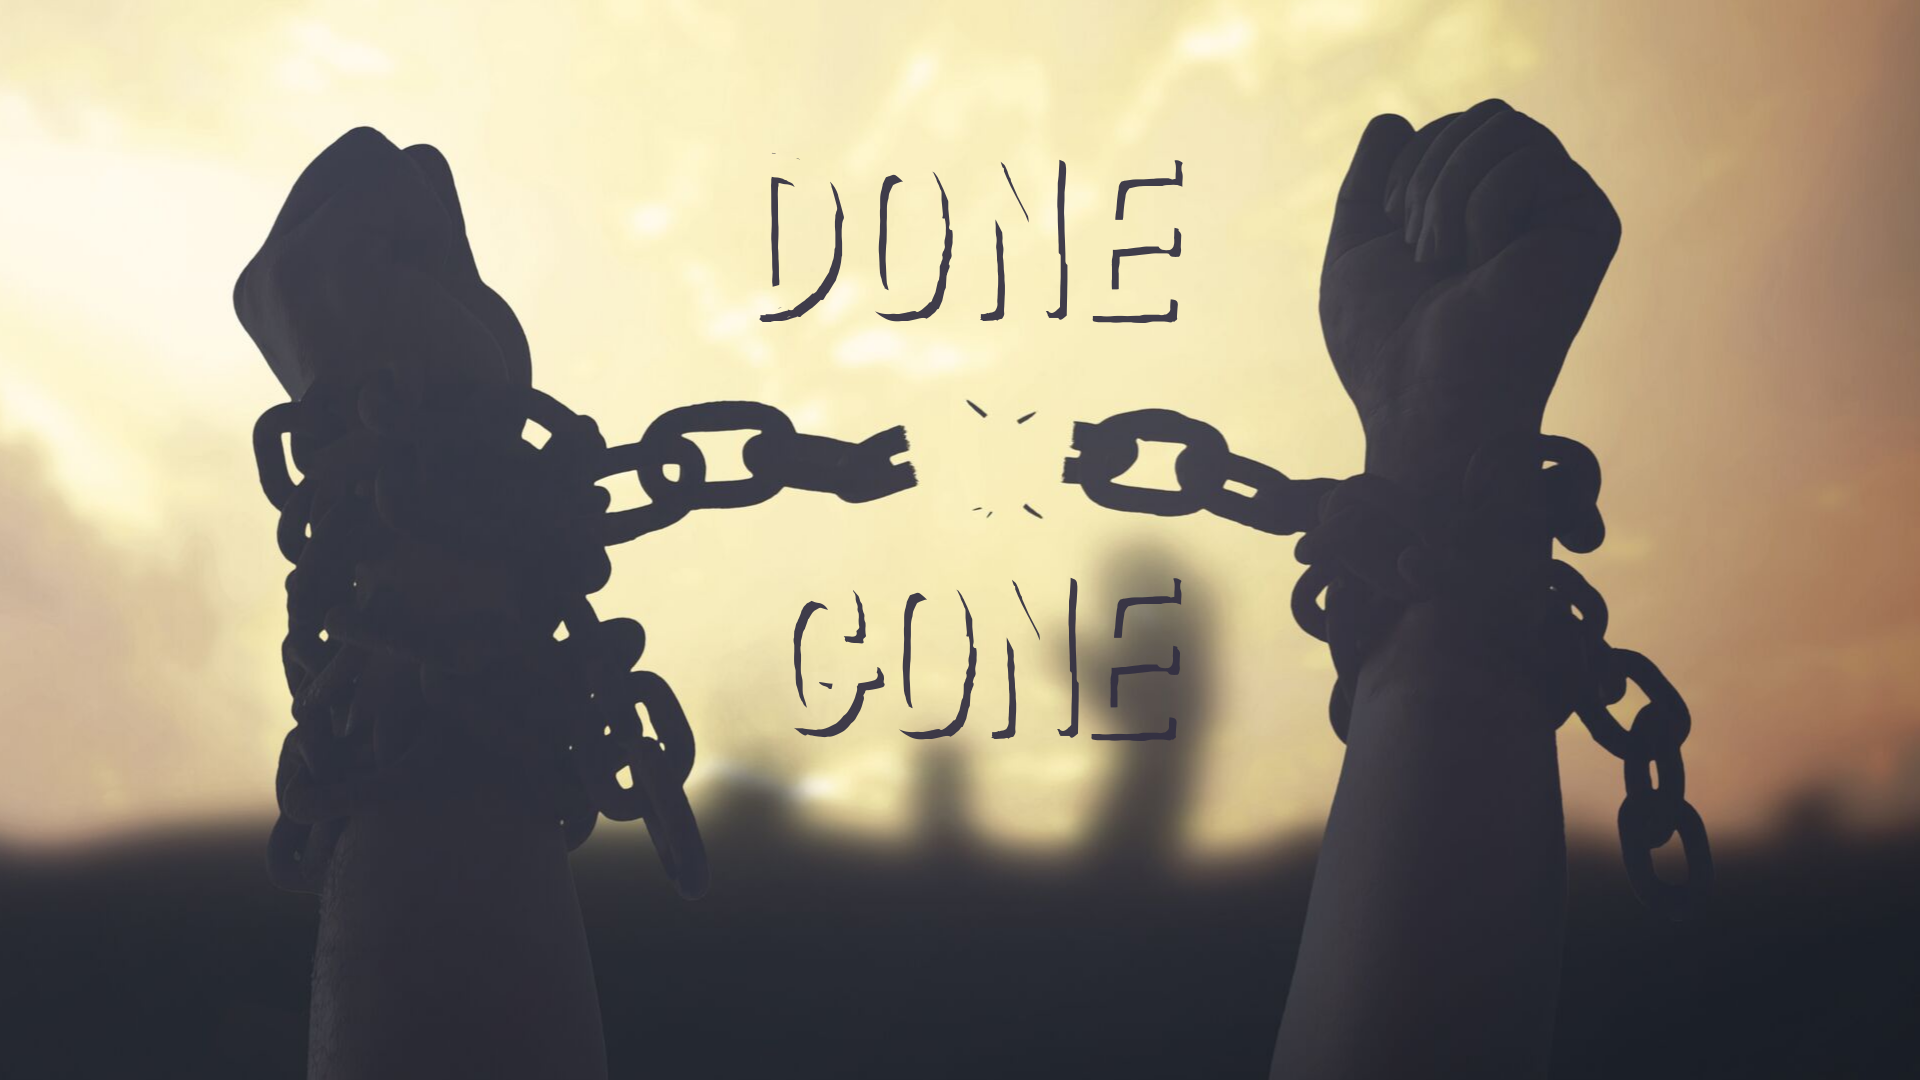 Nov 10 AM 2019   Done & Gone   The name of Jesus